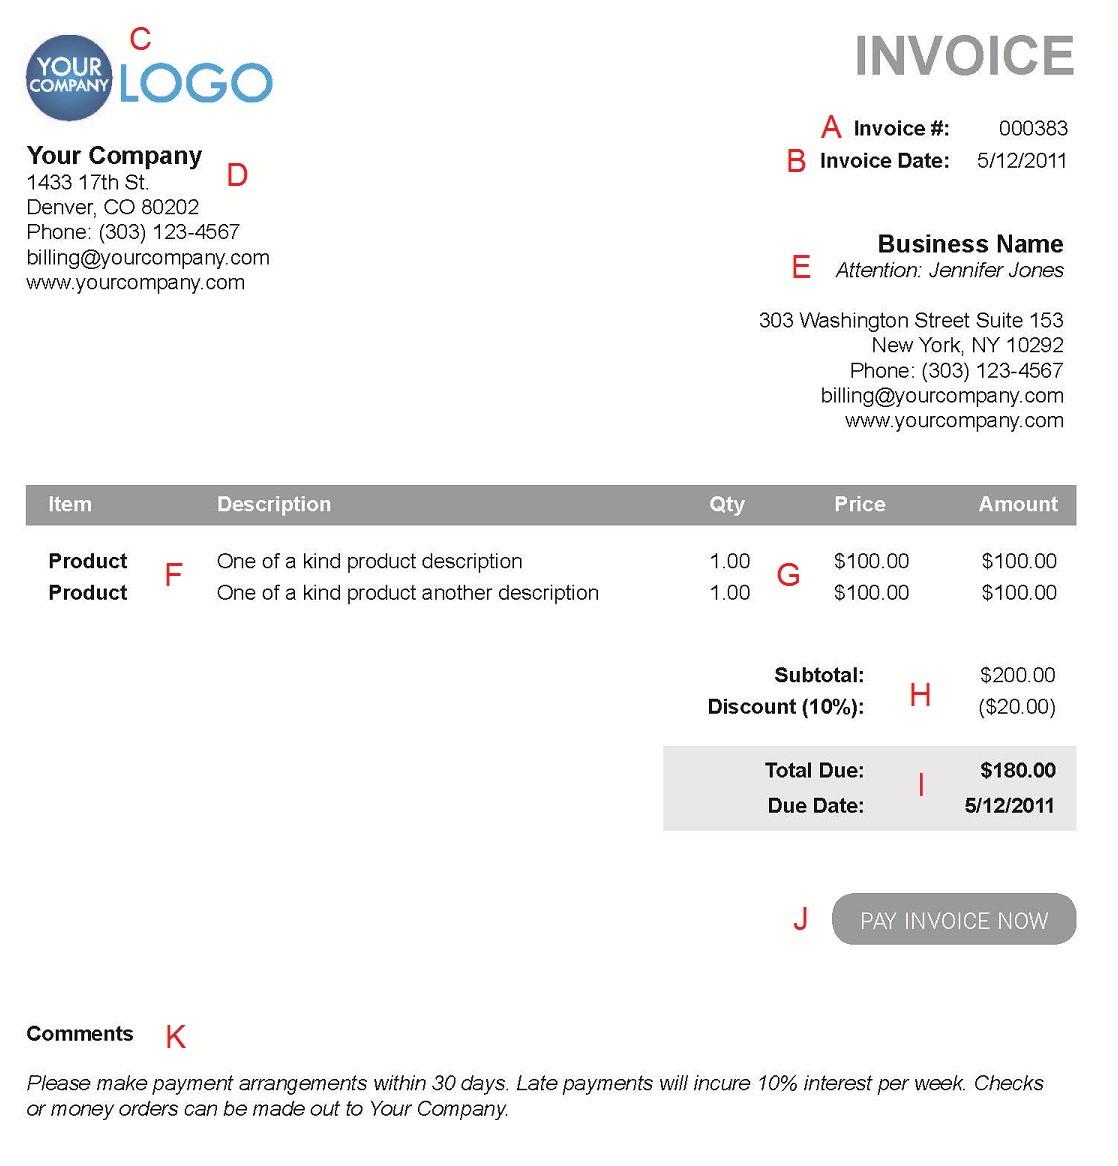 Coolmathgamesus  Winning The  Different Sections Of An Electronic Payment Invoice With Entrancing A  With Nice Receipt Of Sale Form Also Receipts For Cash Payments In Addition Home Depot Receipt Copy And Cake Receipts As Well As Internal Controls For Cash Receipts Additionally Washington Flyer Receipt From Paysimplecom With Coolmathgamesus  Entrancing The  Different Sections Of An Electronic Payment Invoice With Nice A  And Winning Receipt Of Sale Form Also Receipts For Cash Payments In Addition Home Depot Receipt Copy From Paysimplecom